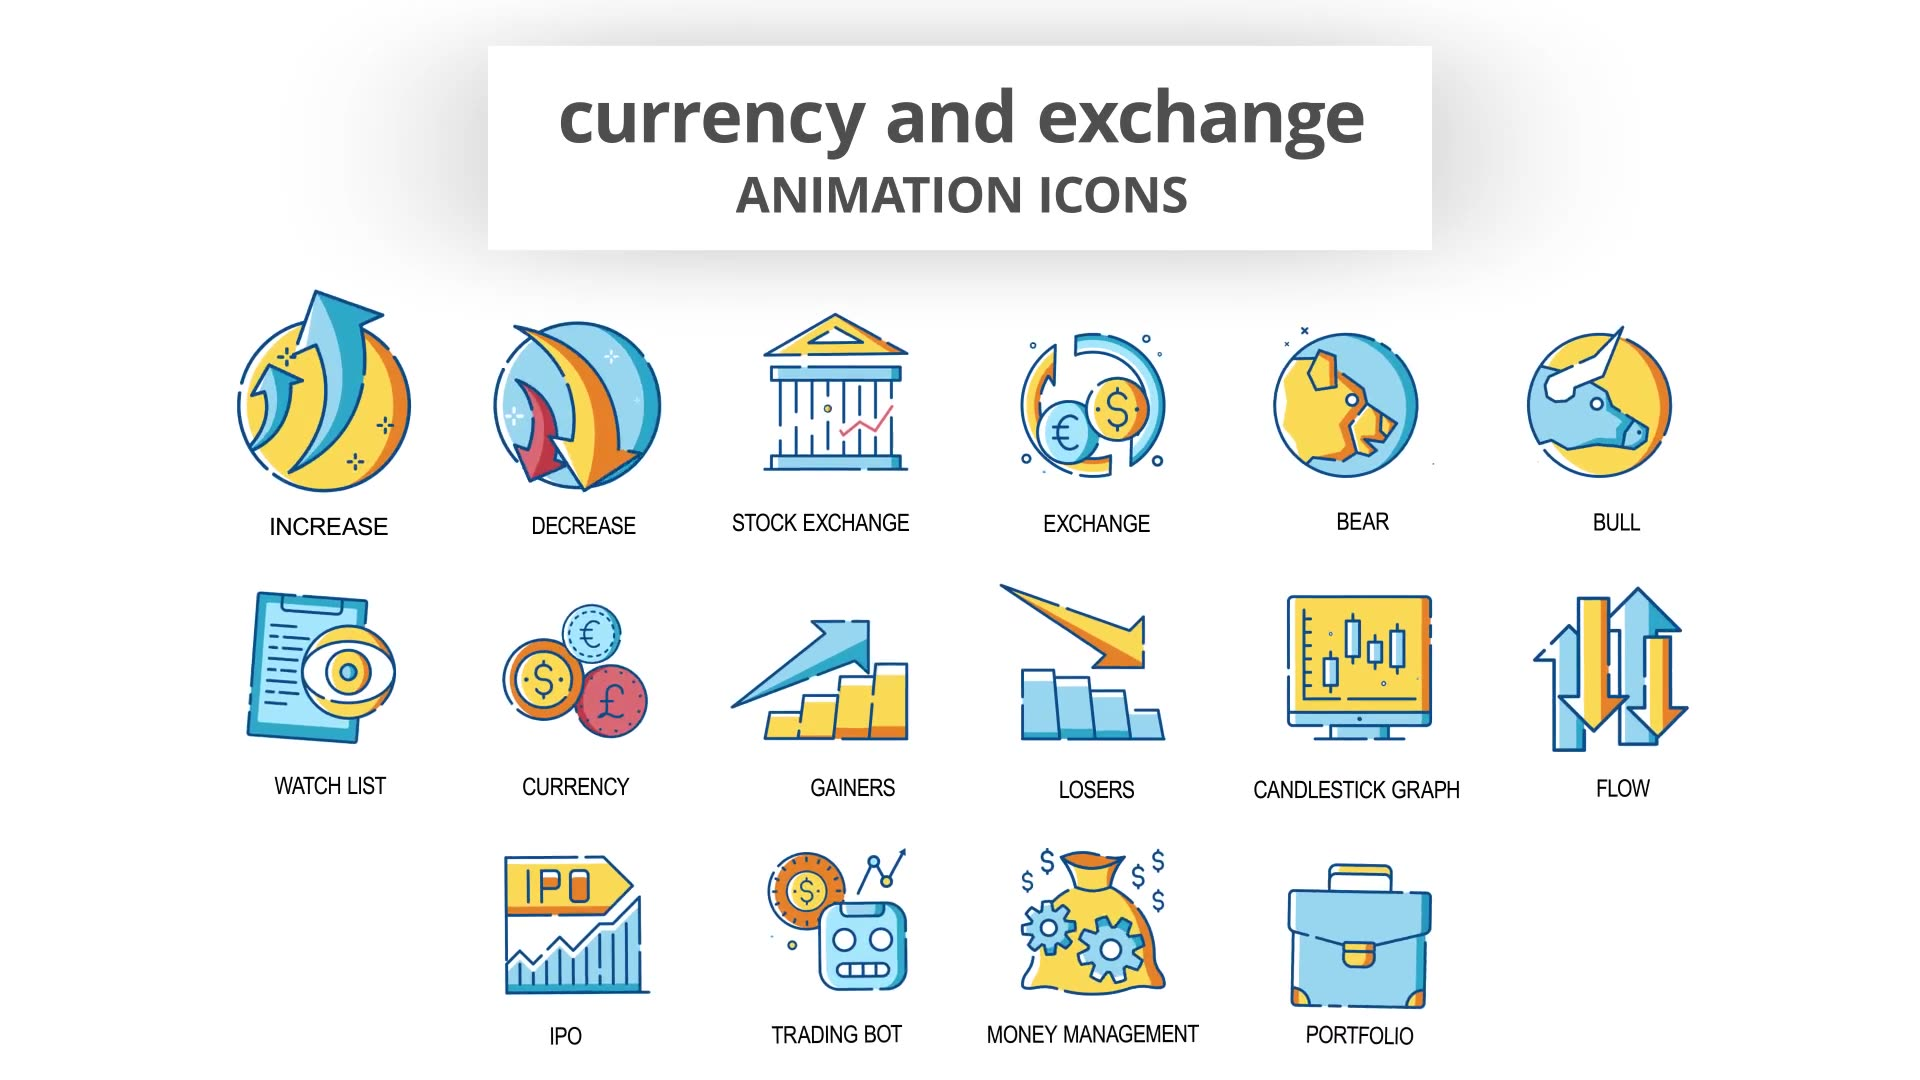 Currency & Exchange Animation Icons Videohive 30260825 After Effects Image 5